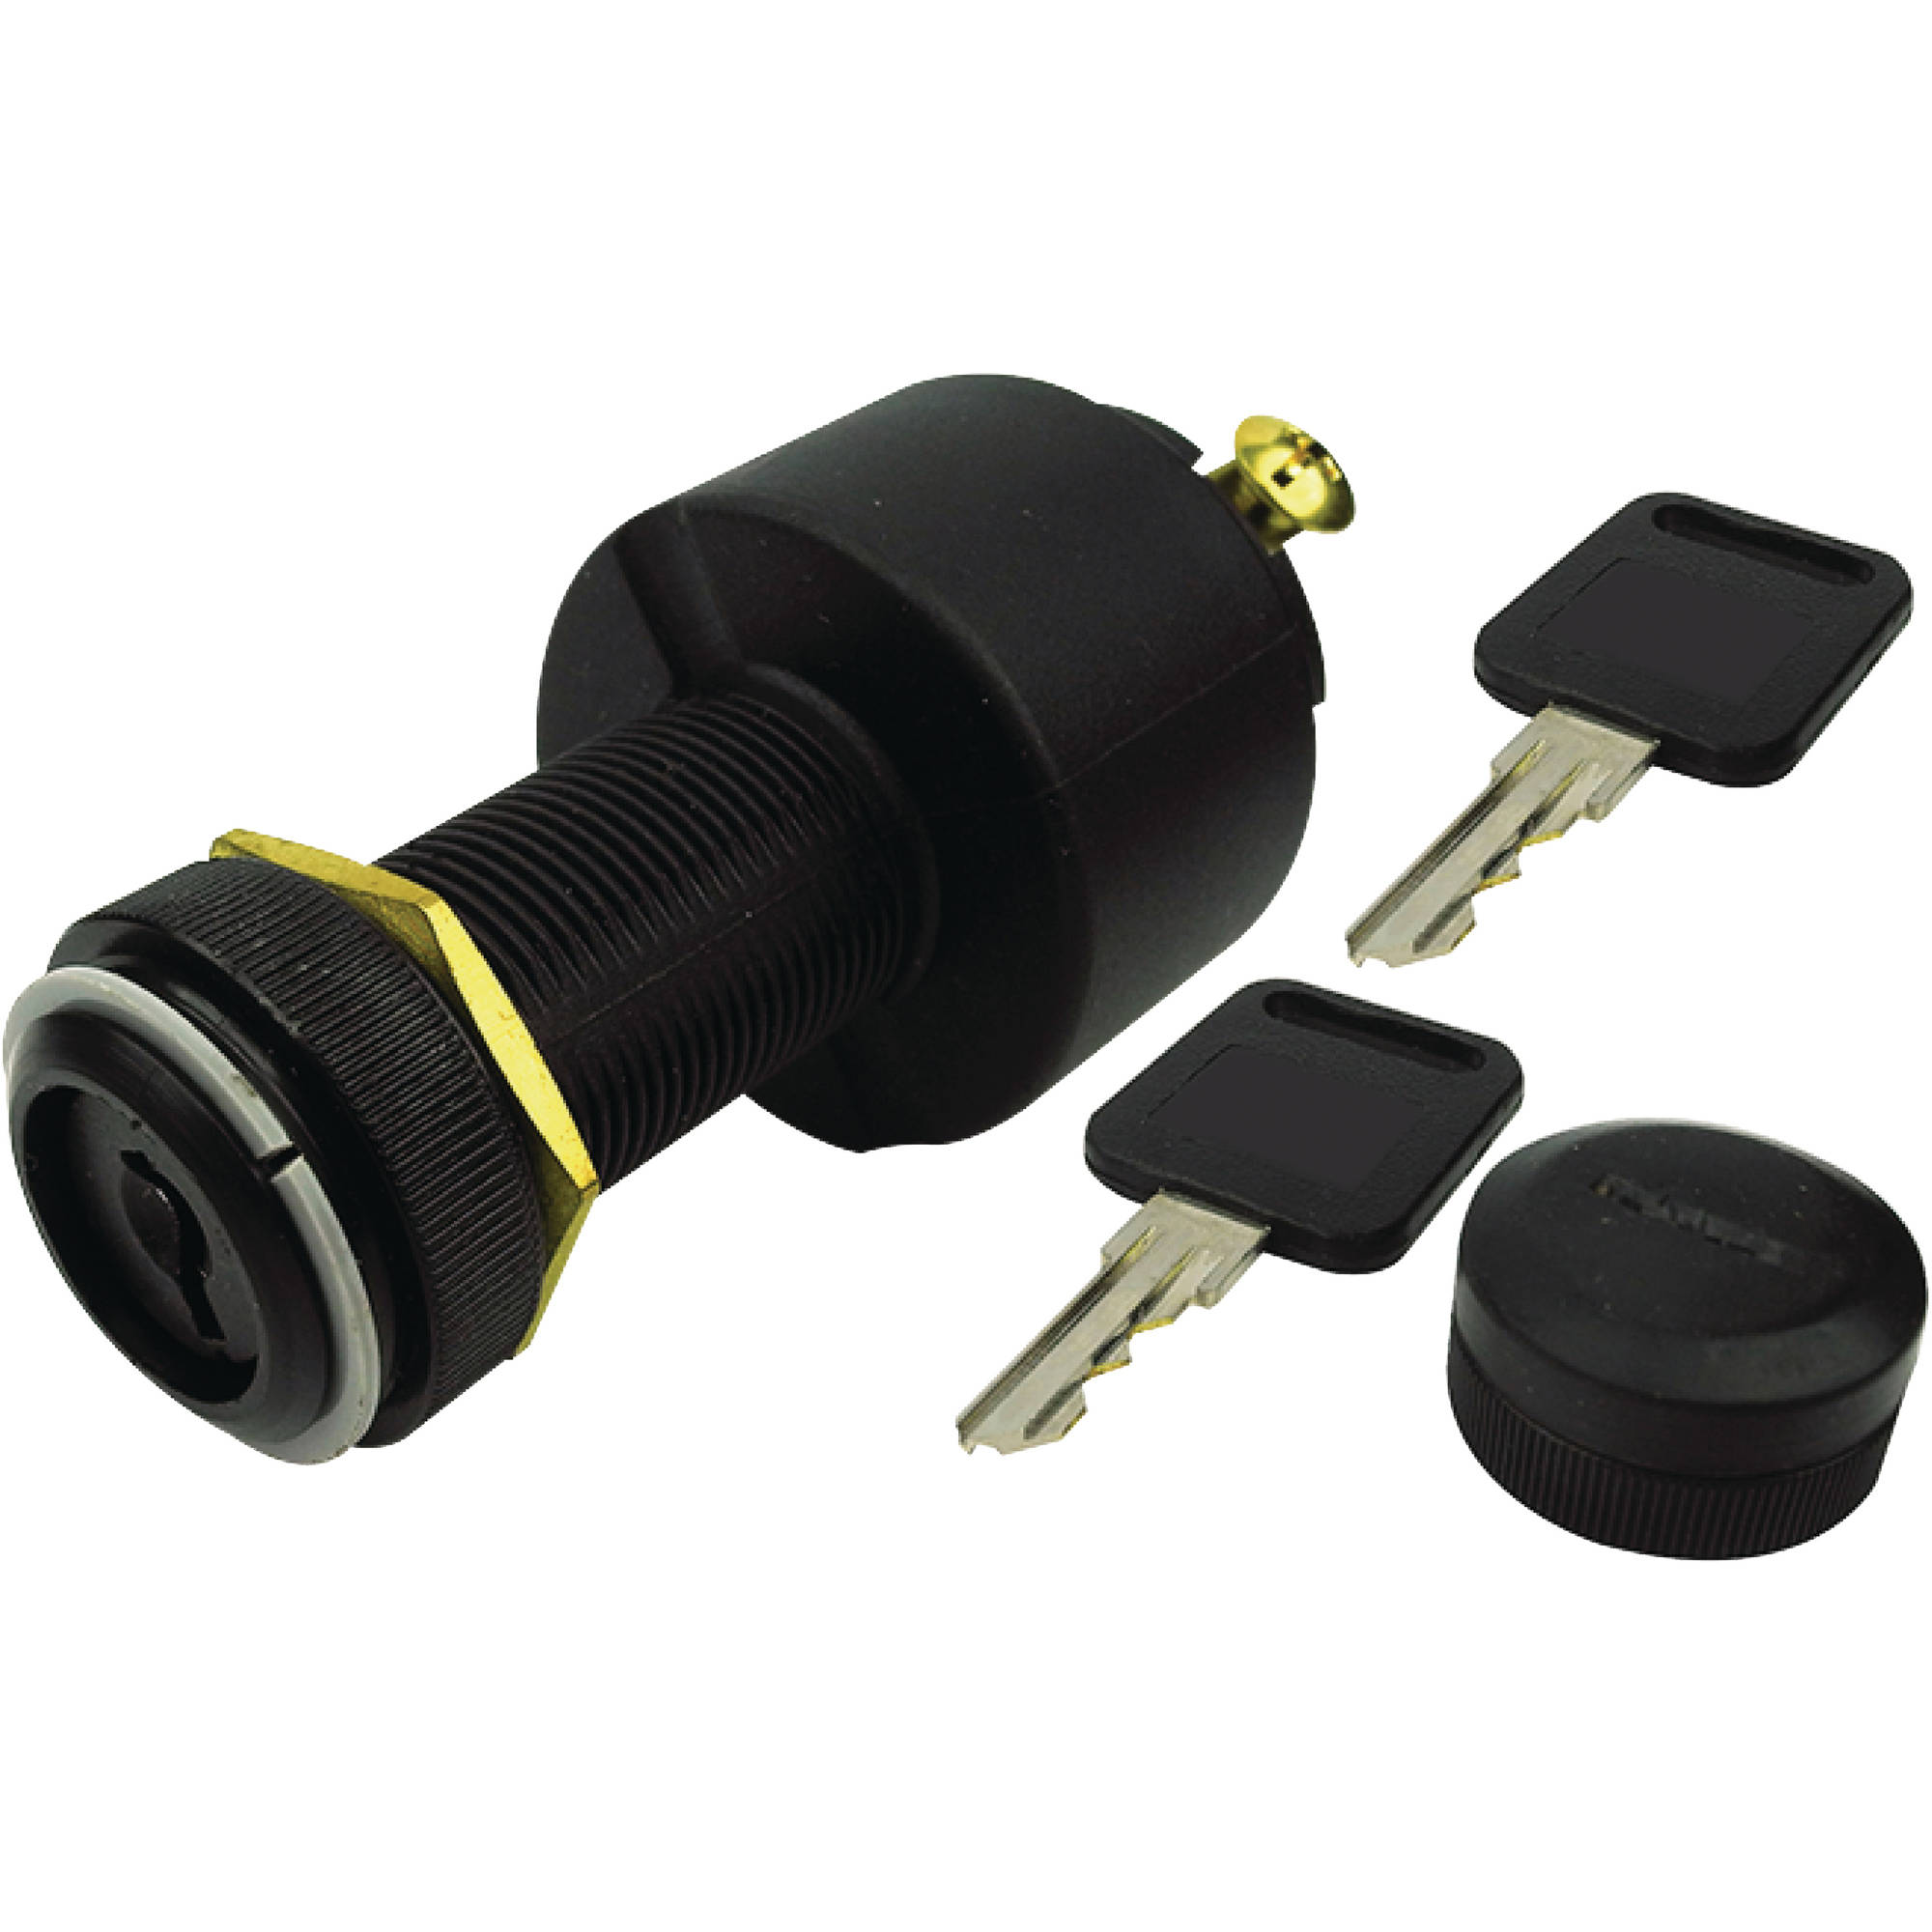 Seachoice 11801 4 Position Starter Switch, 4 Screw